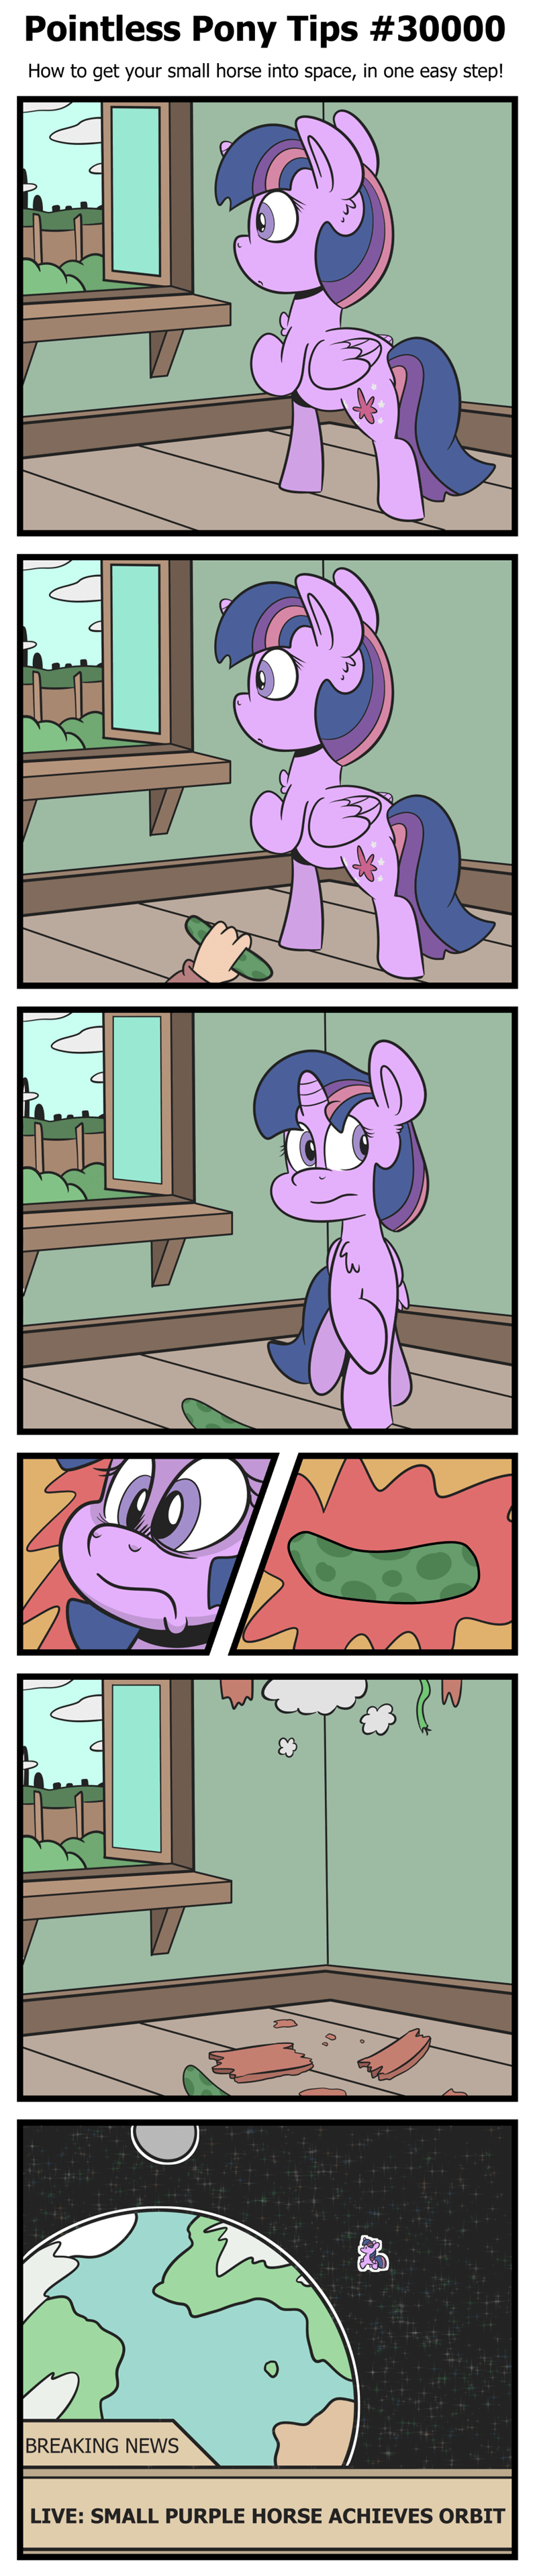 twilight sparkle,comic,acting like animals